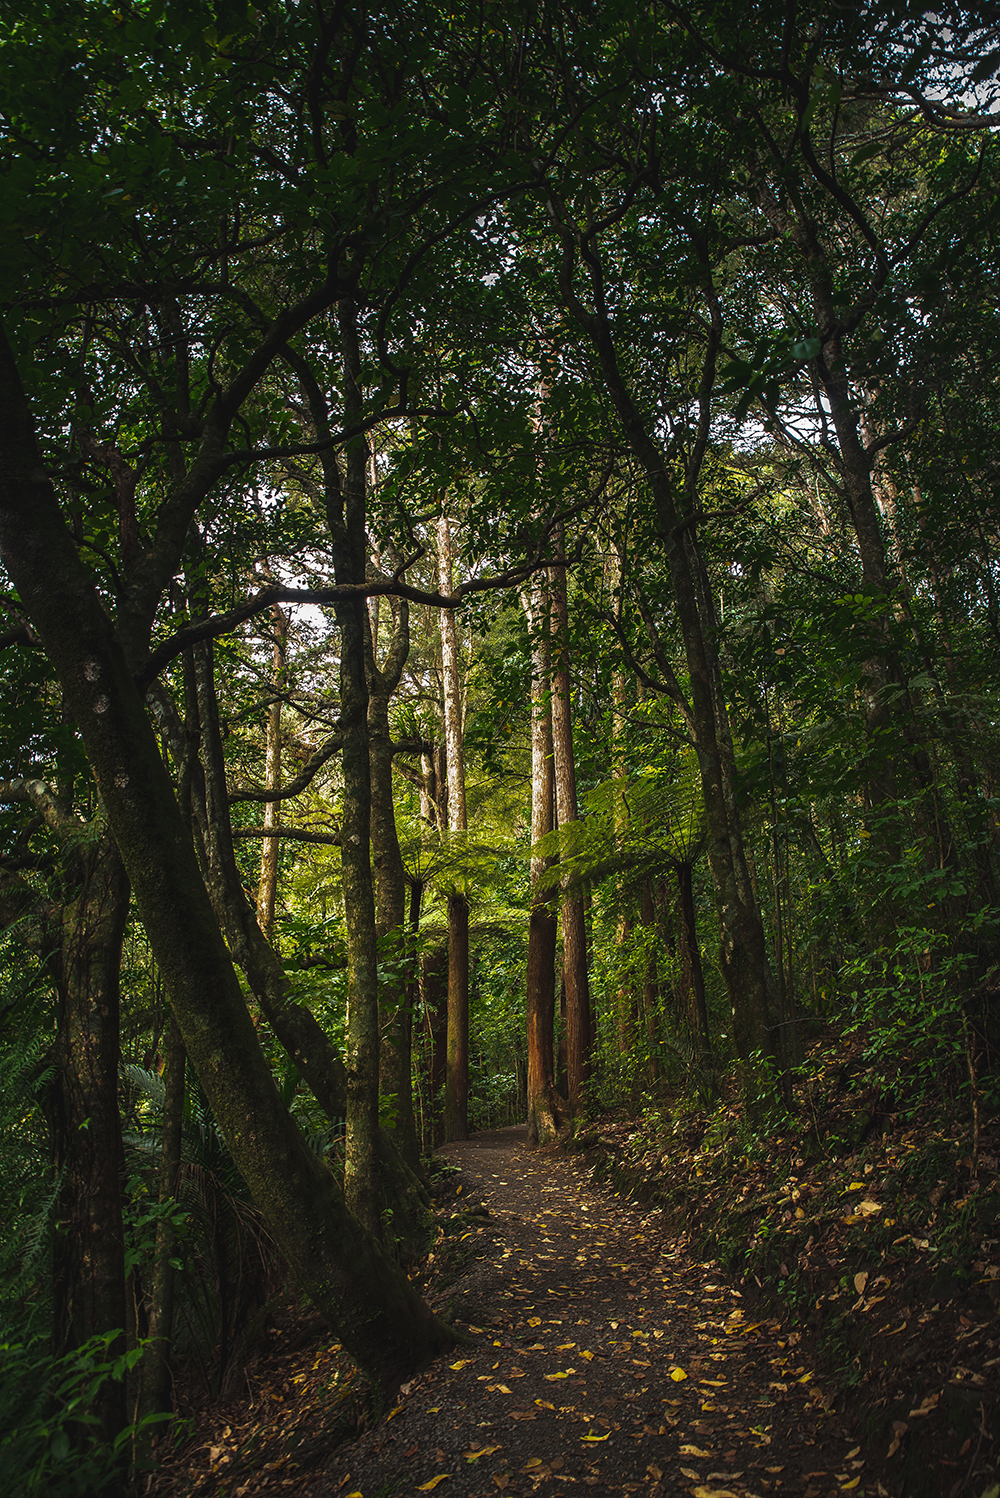 A typical forest - these can be found throughout New Zealand.